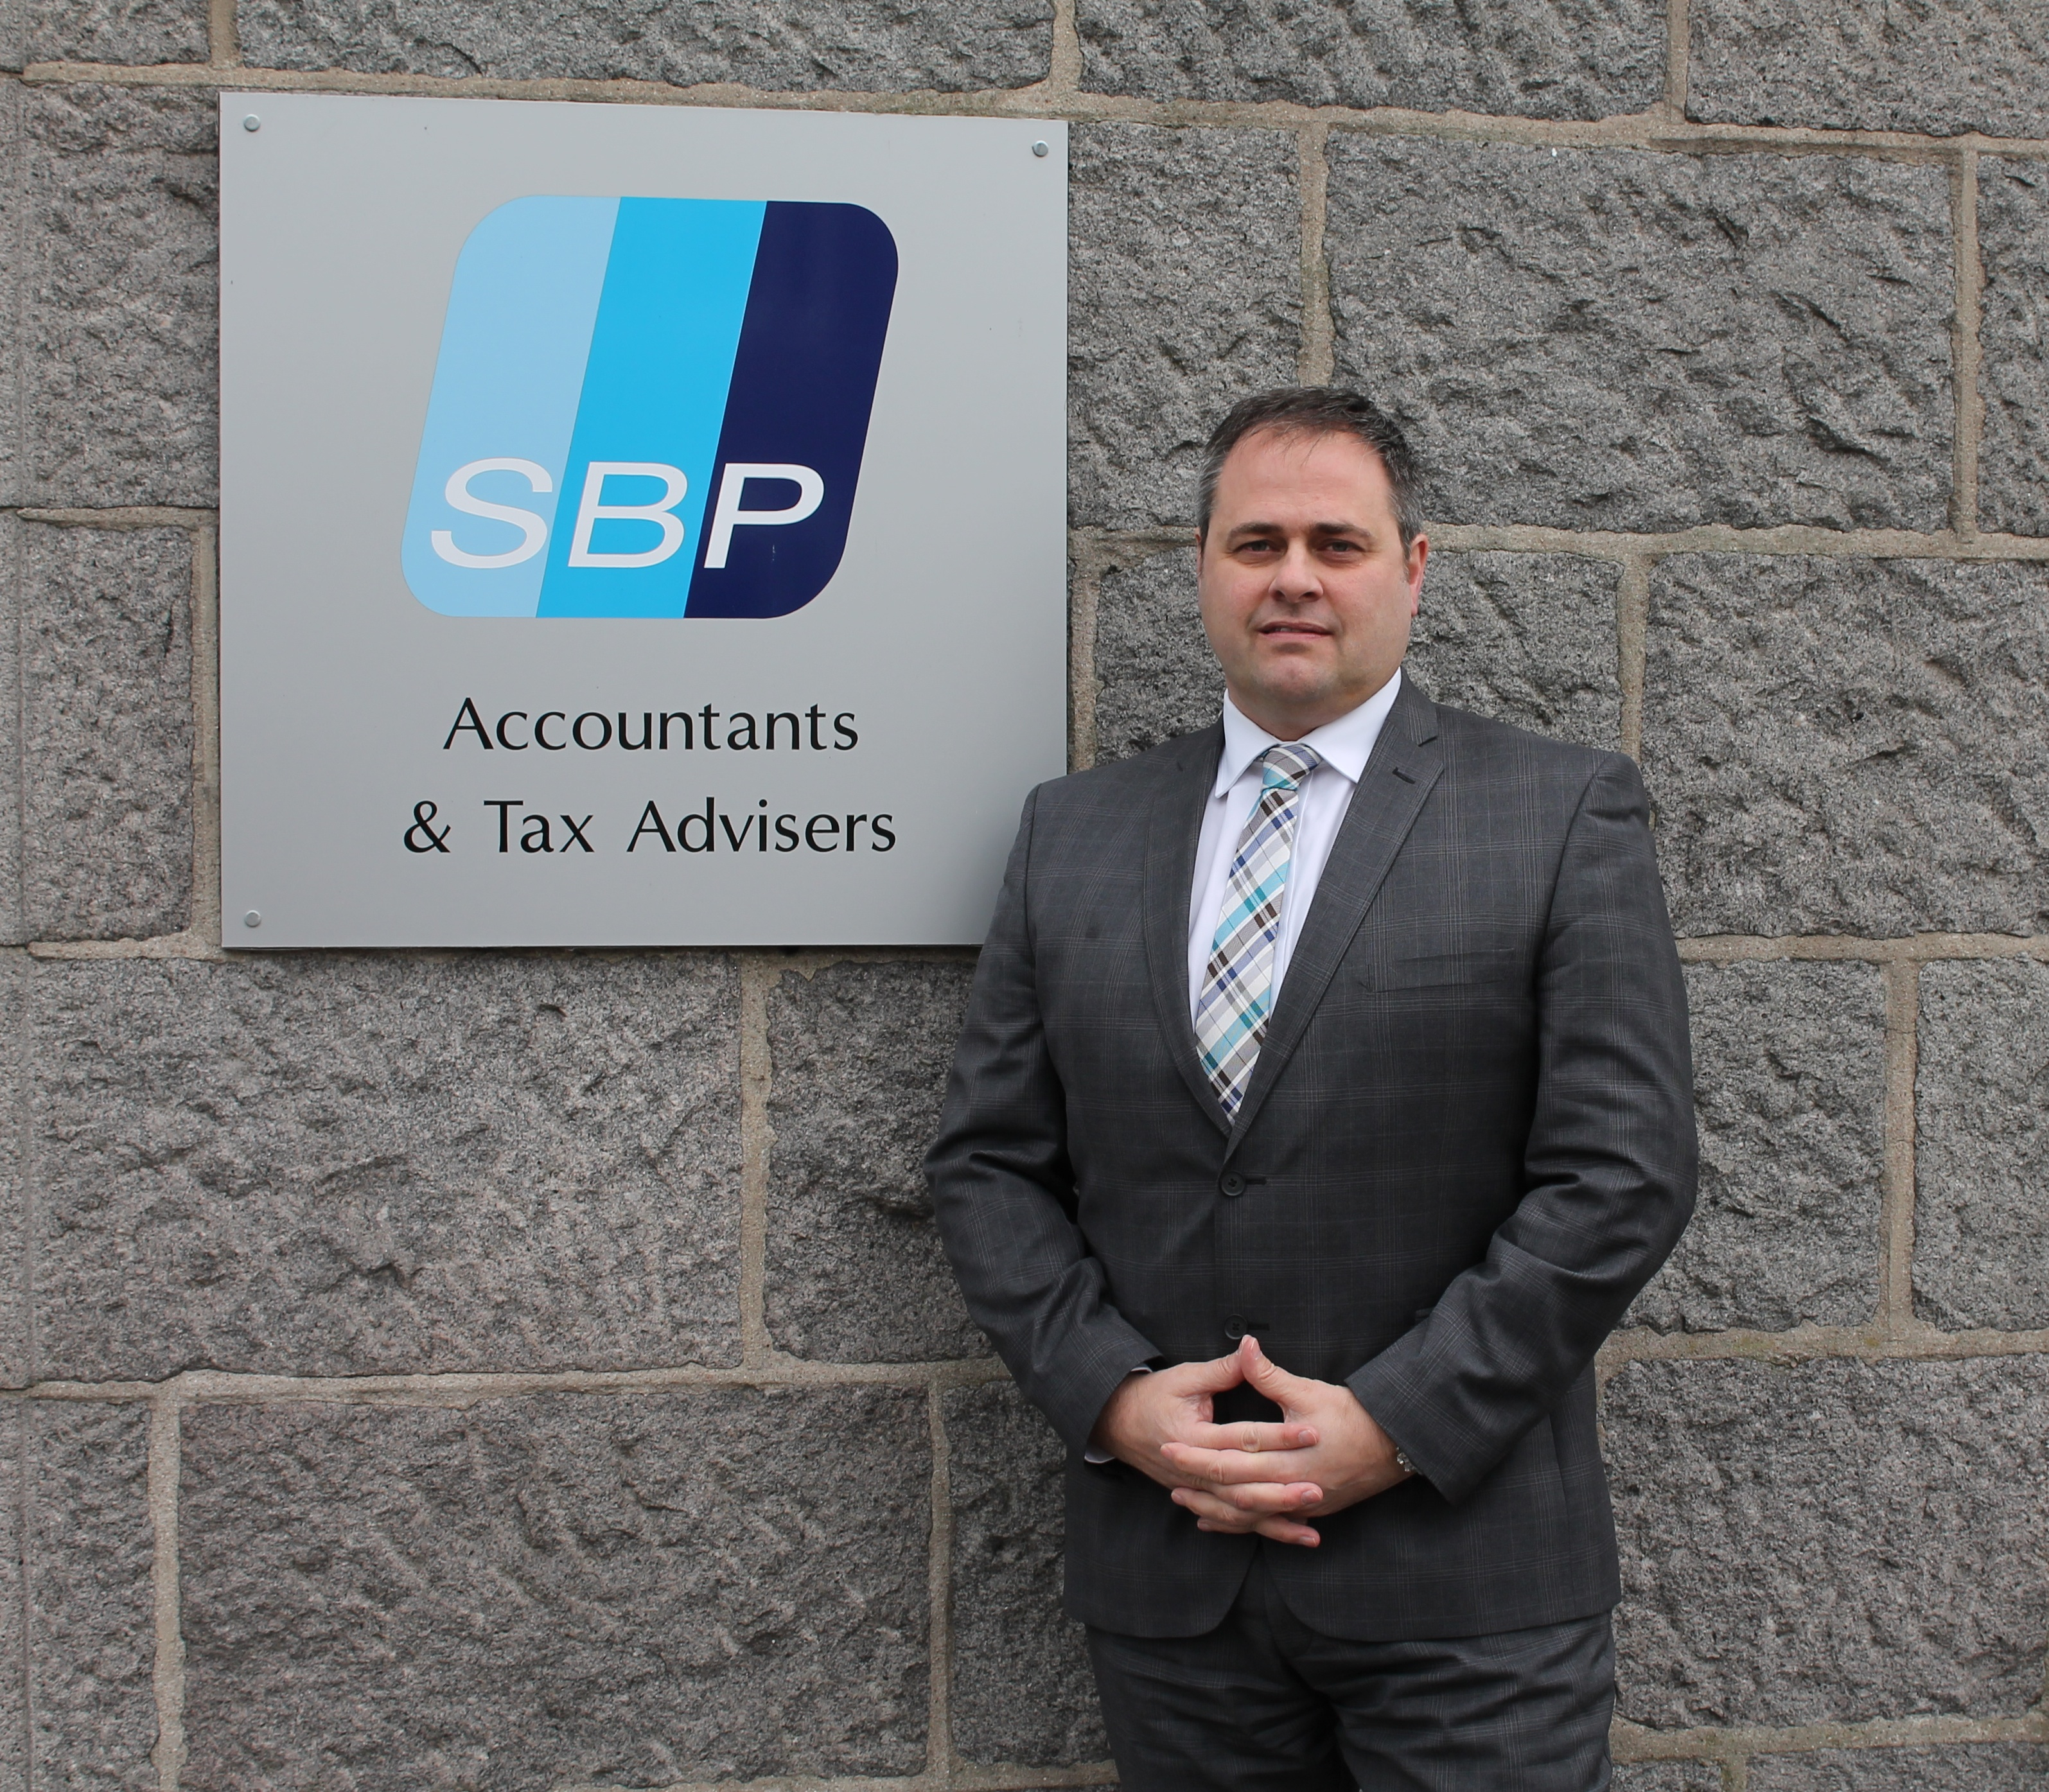 Media Release: SBP Accountants & Tax Advisers shortlisted for esteemed North-east award